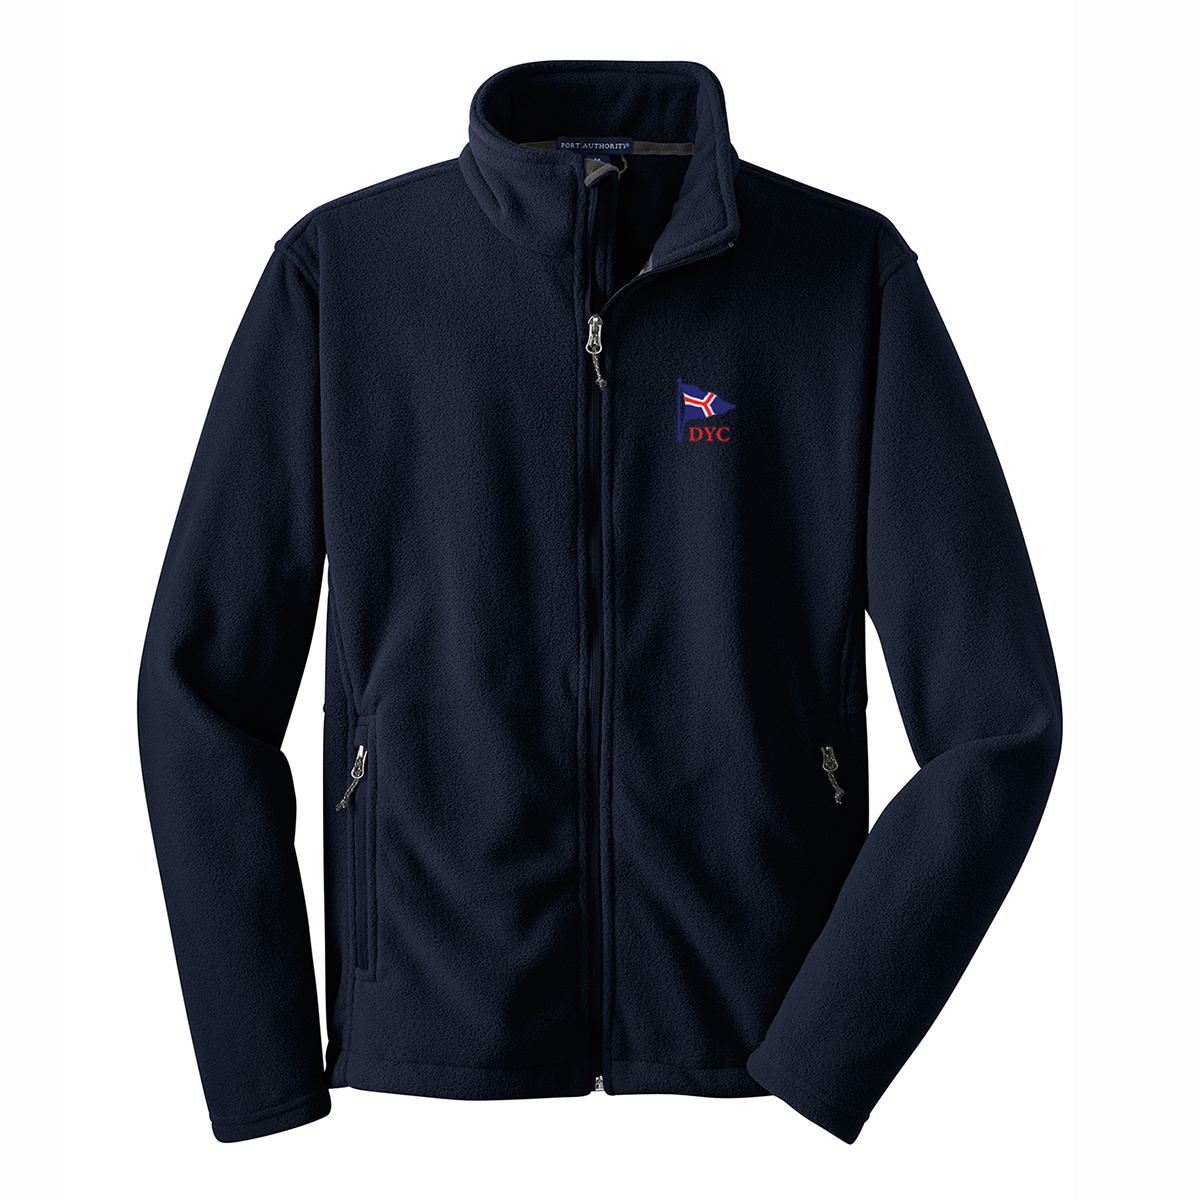 Devon Yacht Club - Youth Value Fleece Jacket